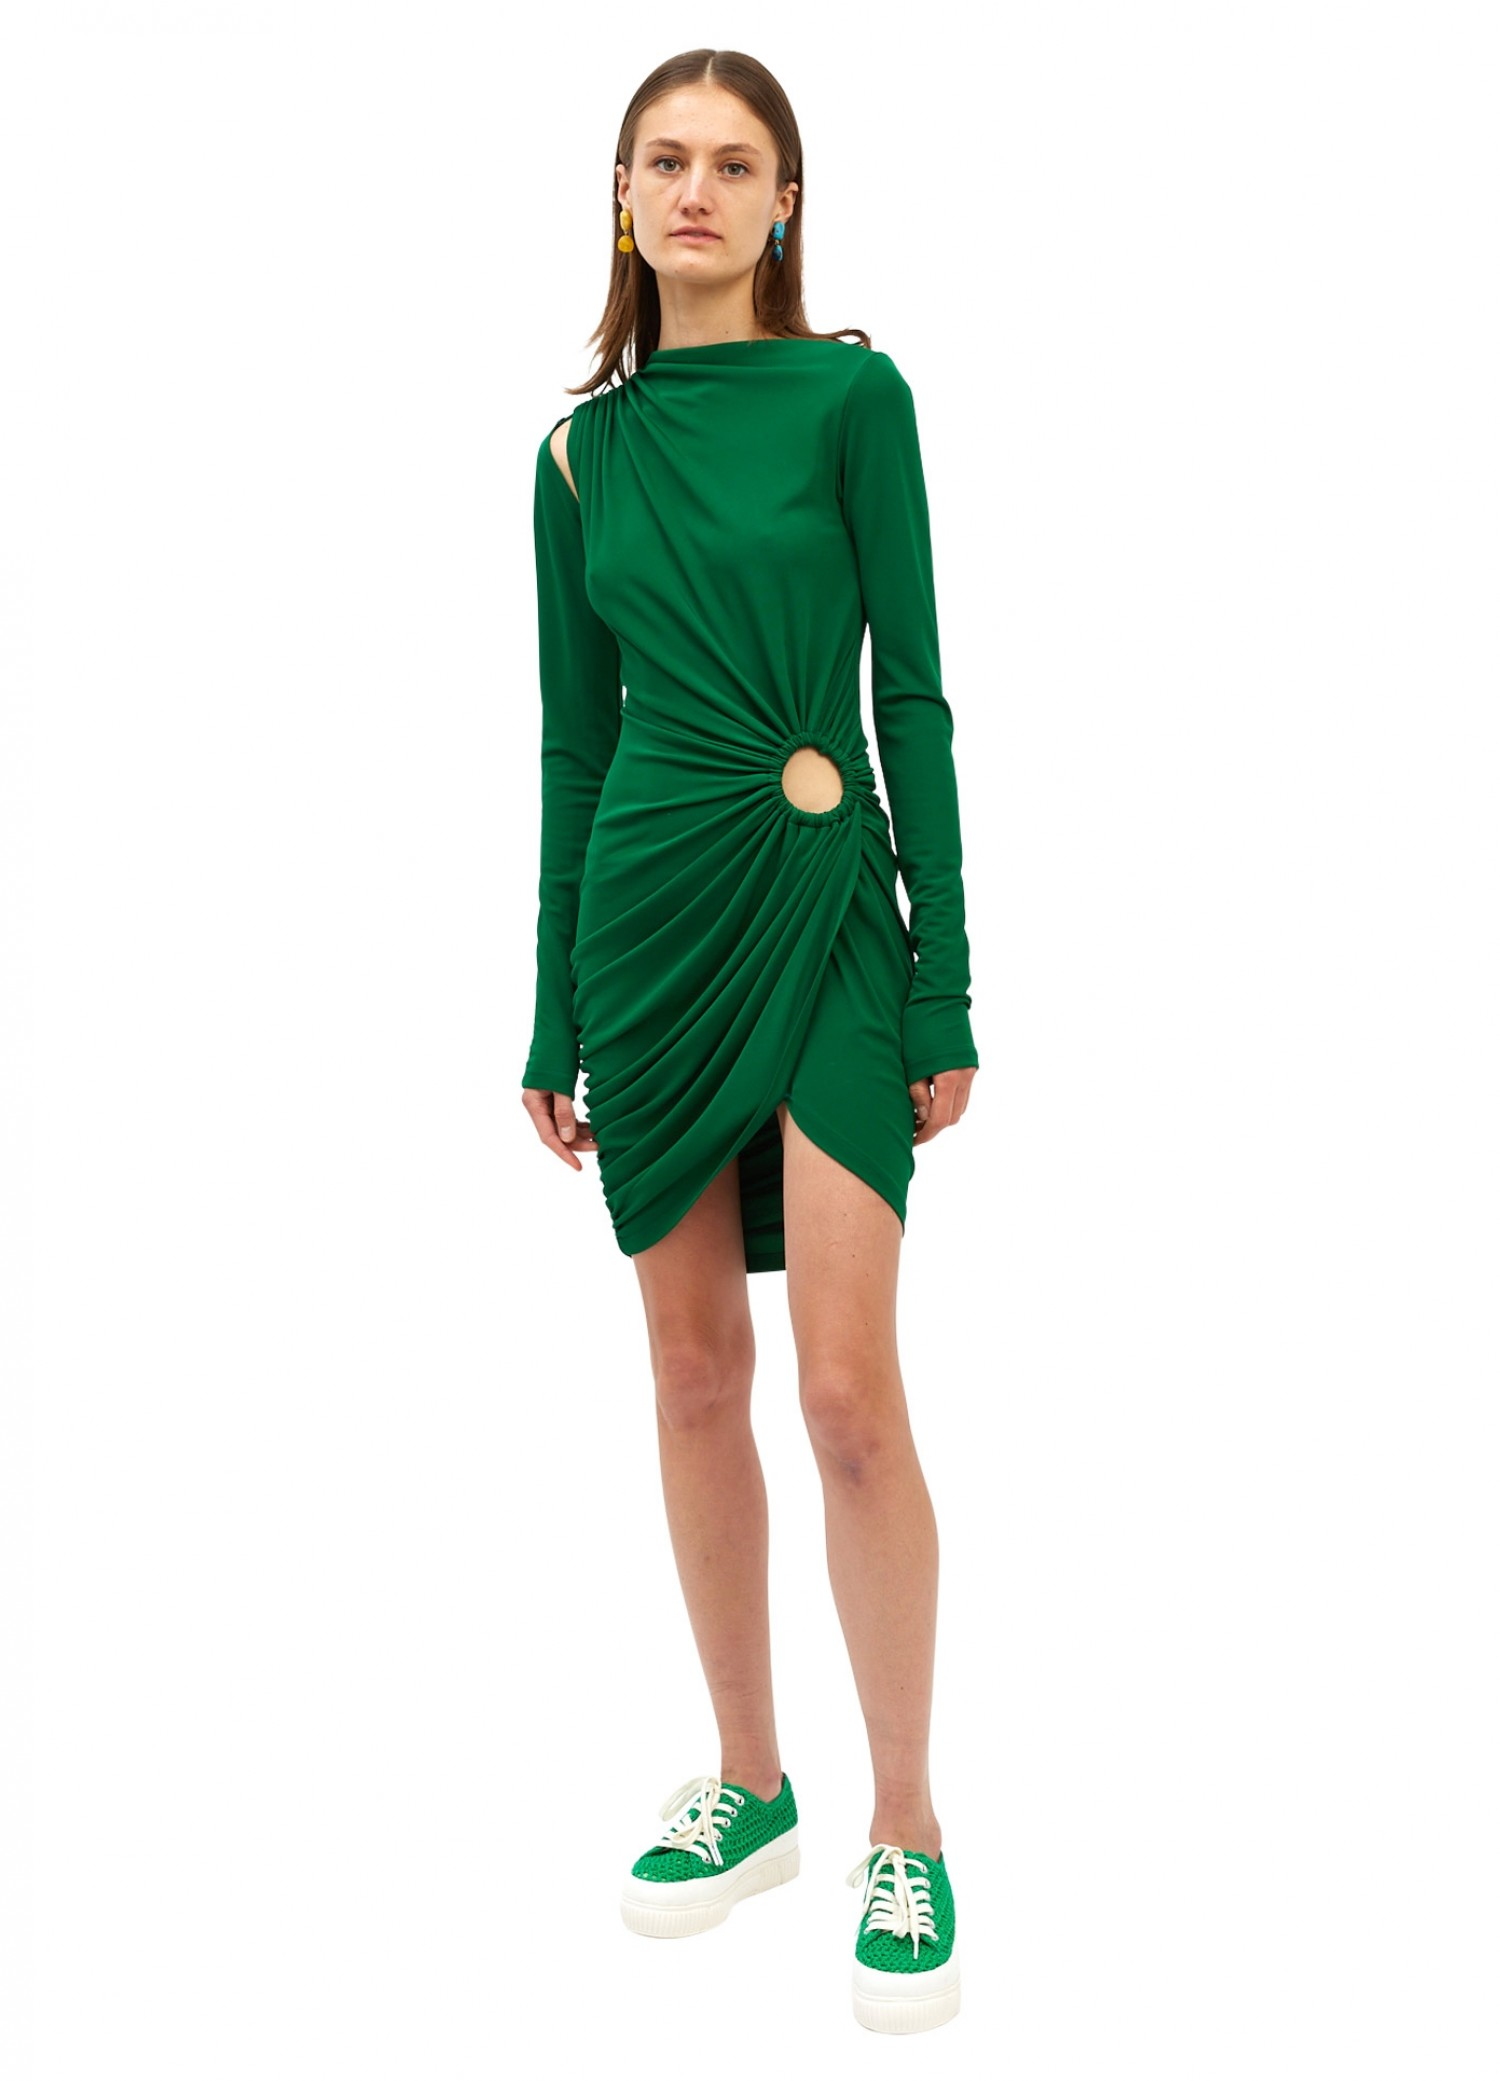 MONSE Vortex Long Sleeve Mini Dress in Grass on Model Front View